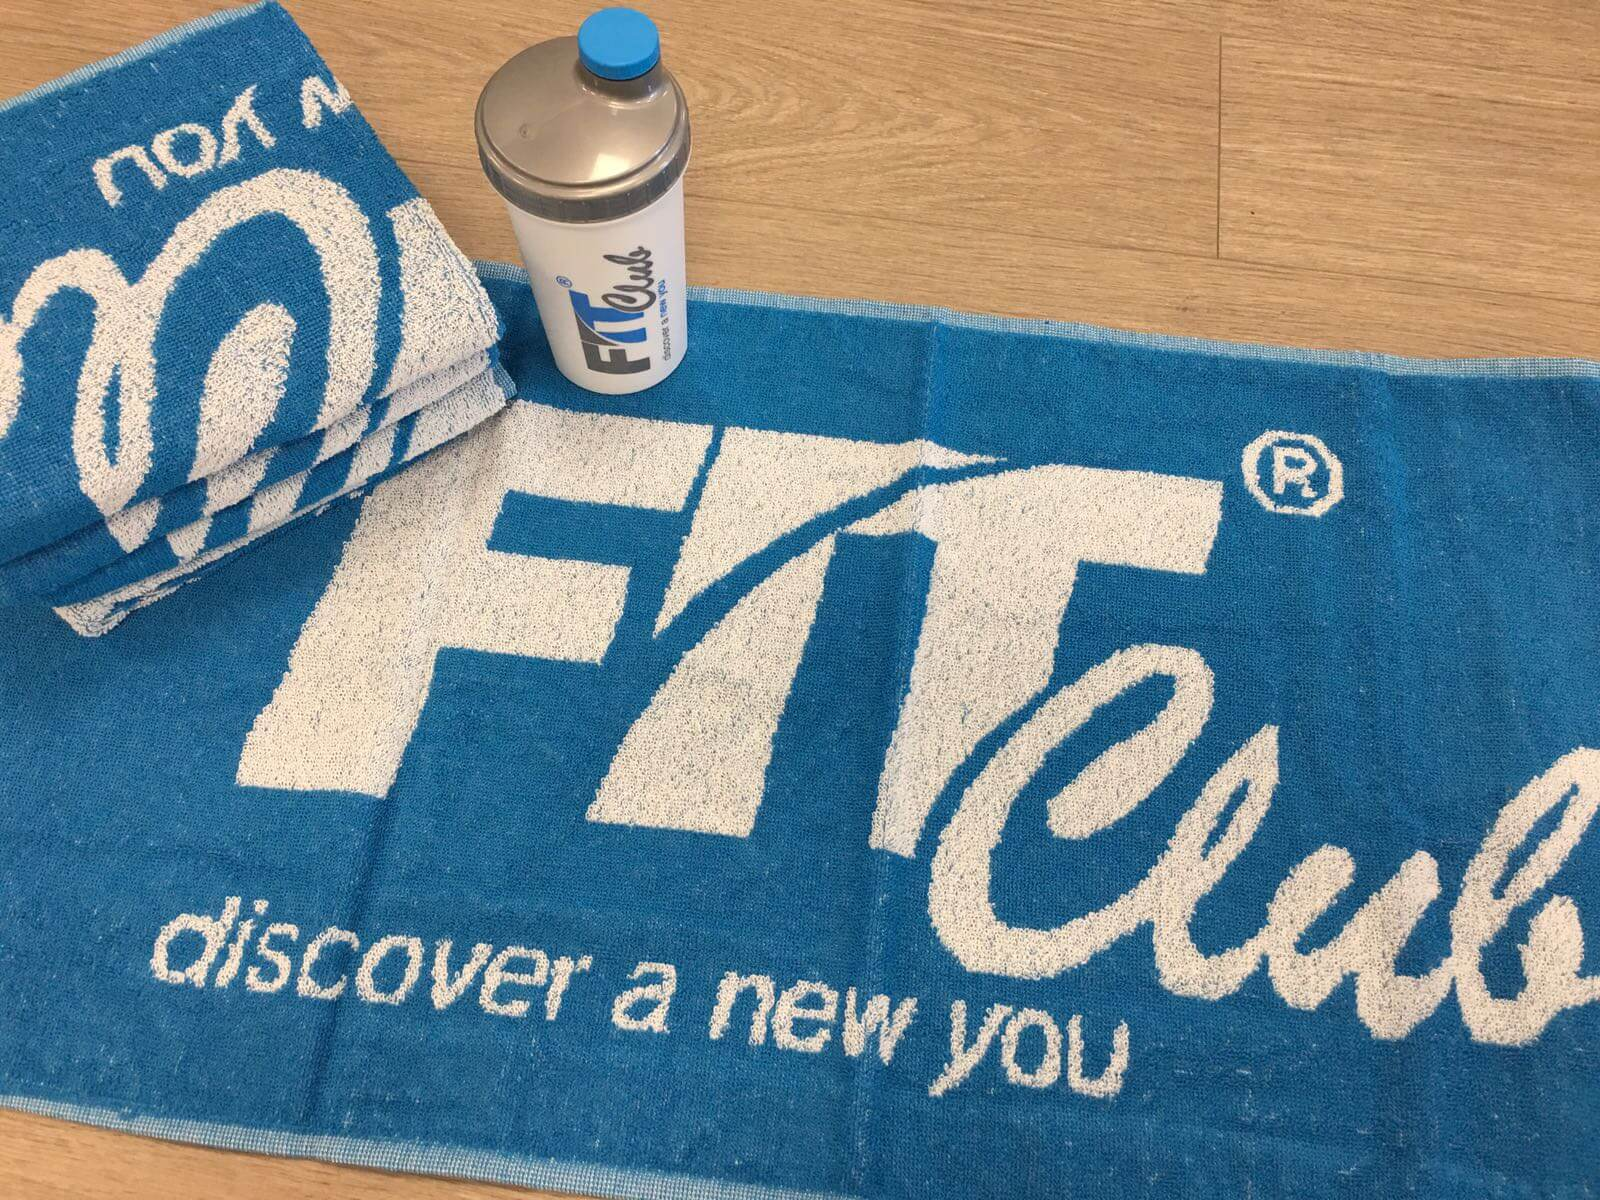 Fit Club shaker and towel